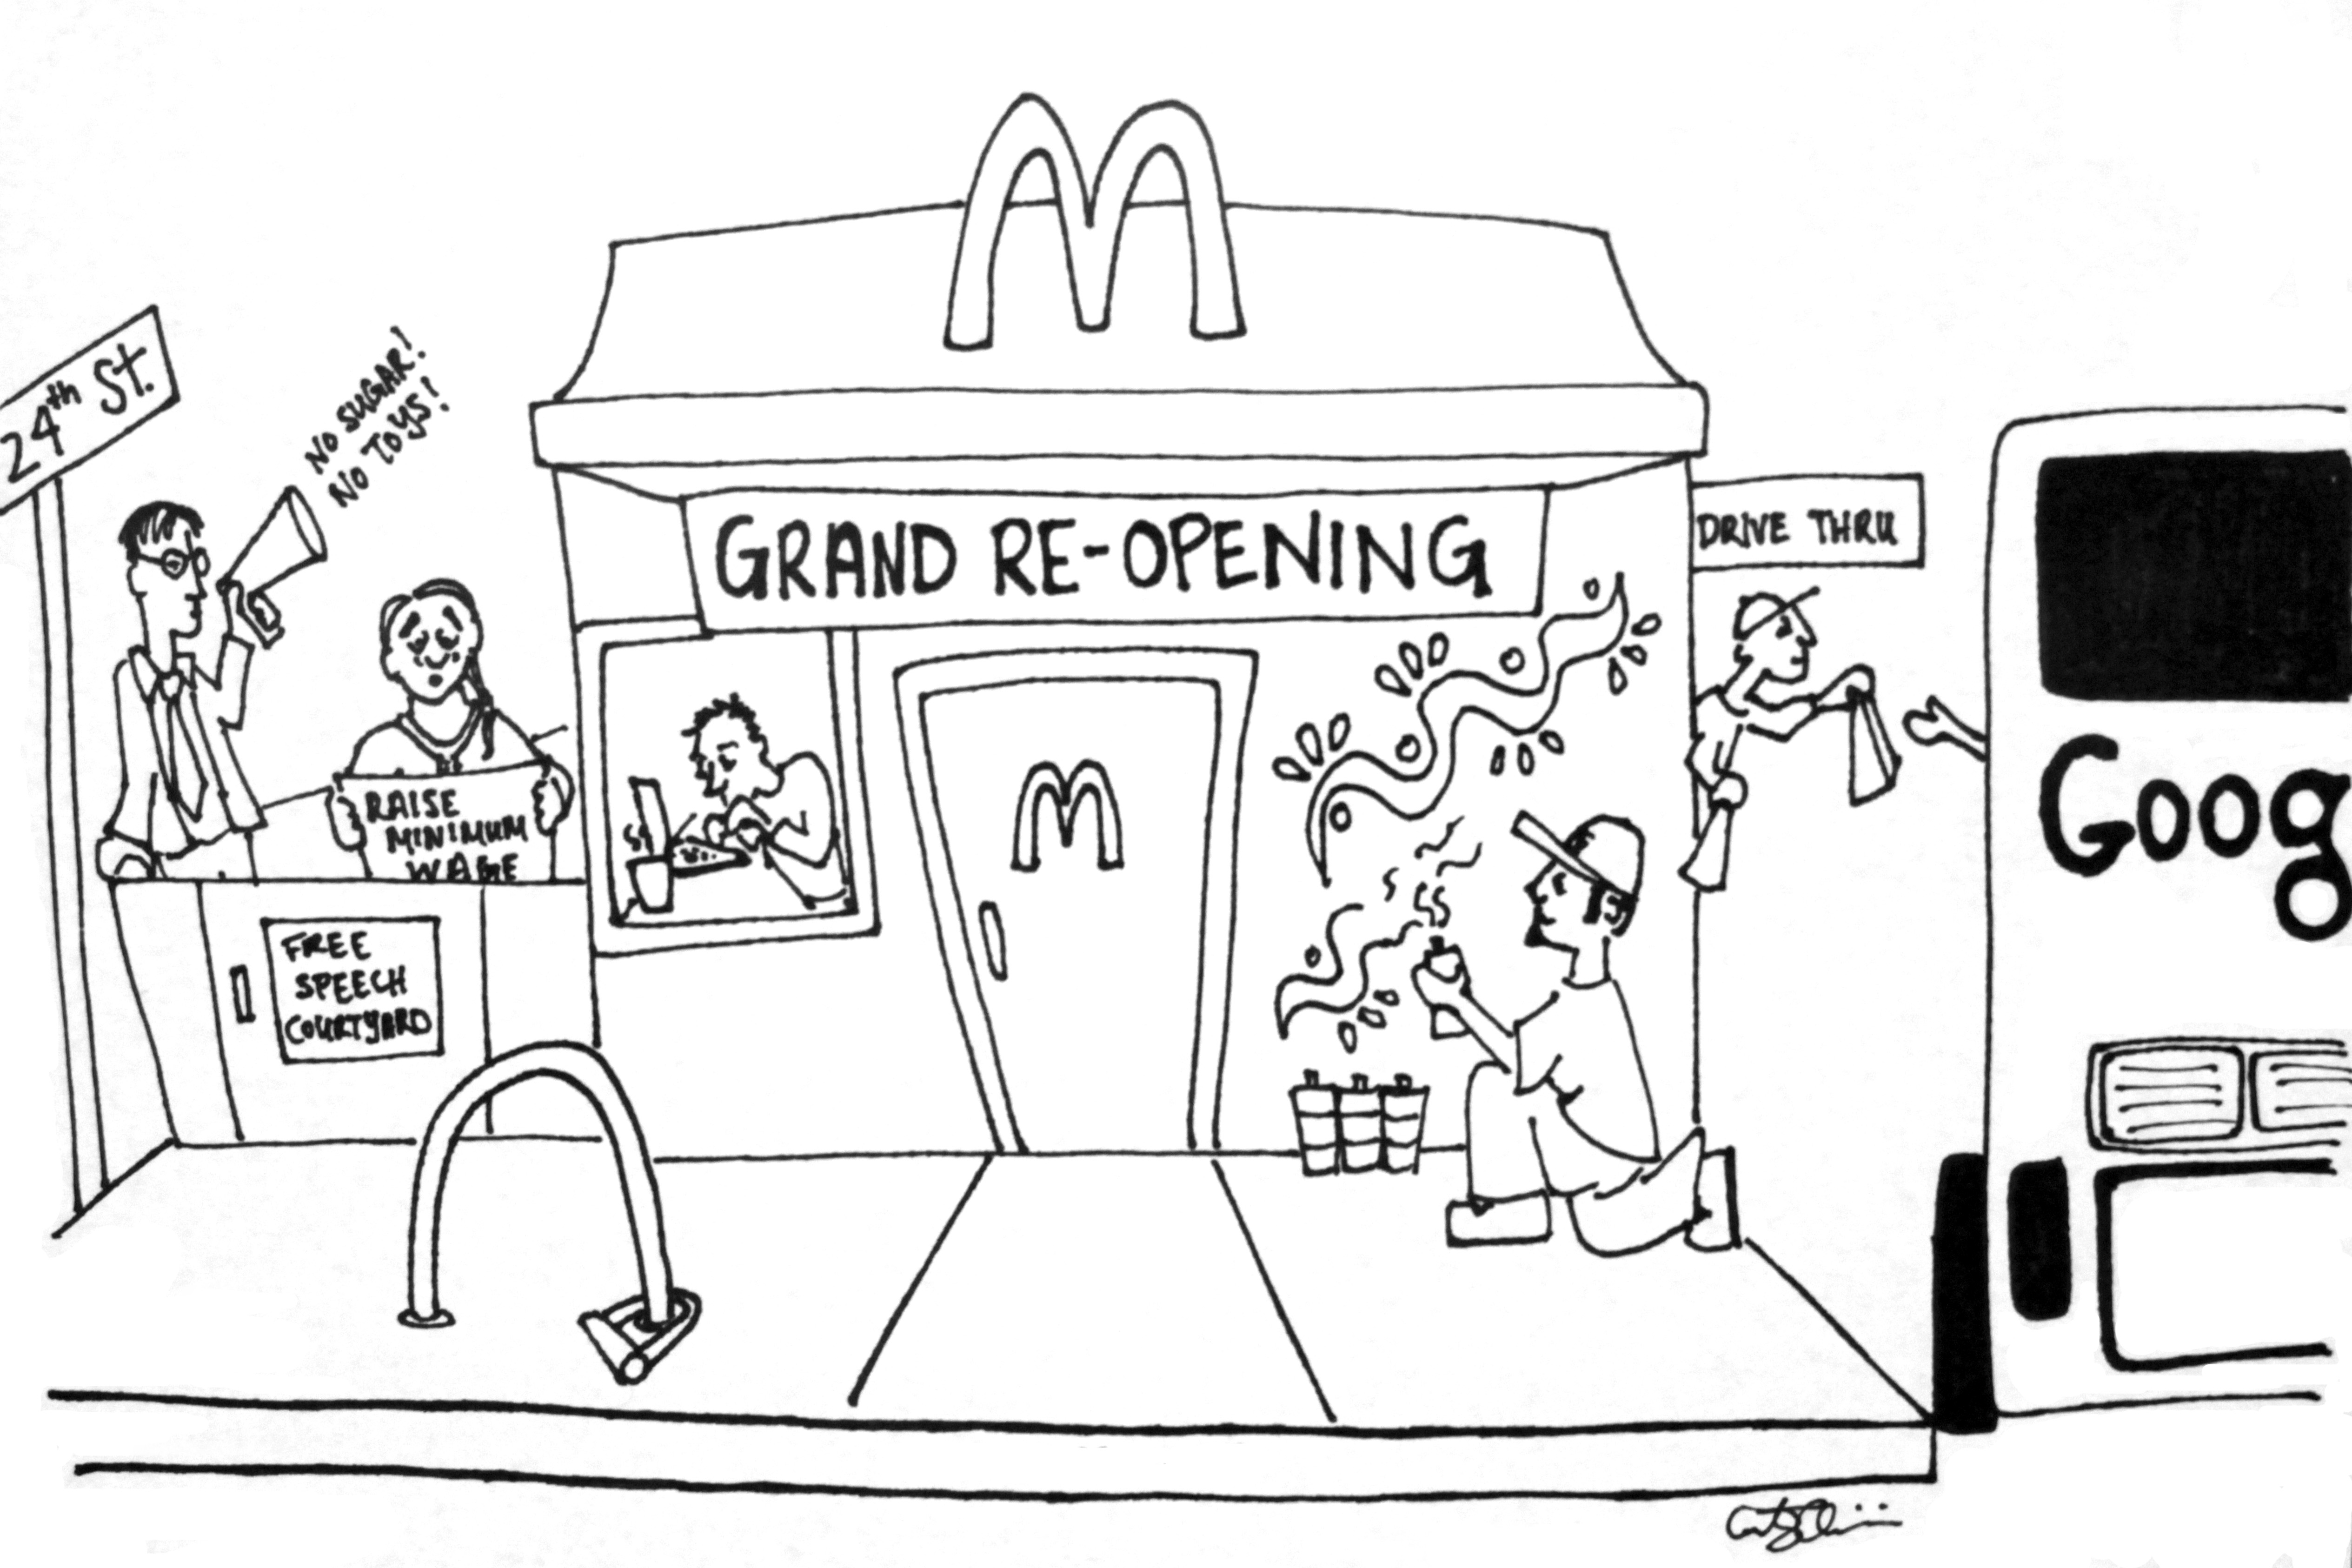 McDonald's Grand Re-Opening: 24th-Mission Style